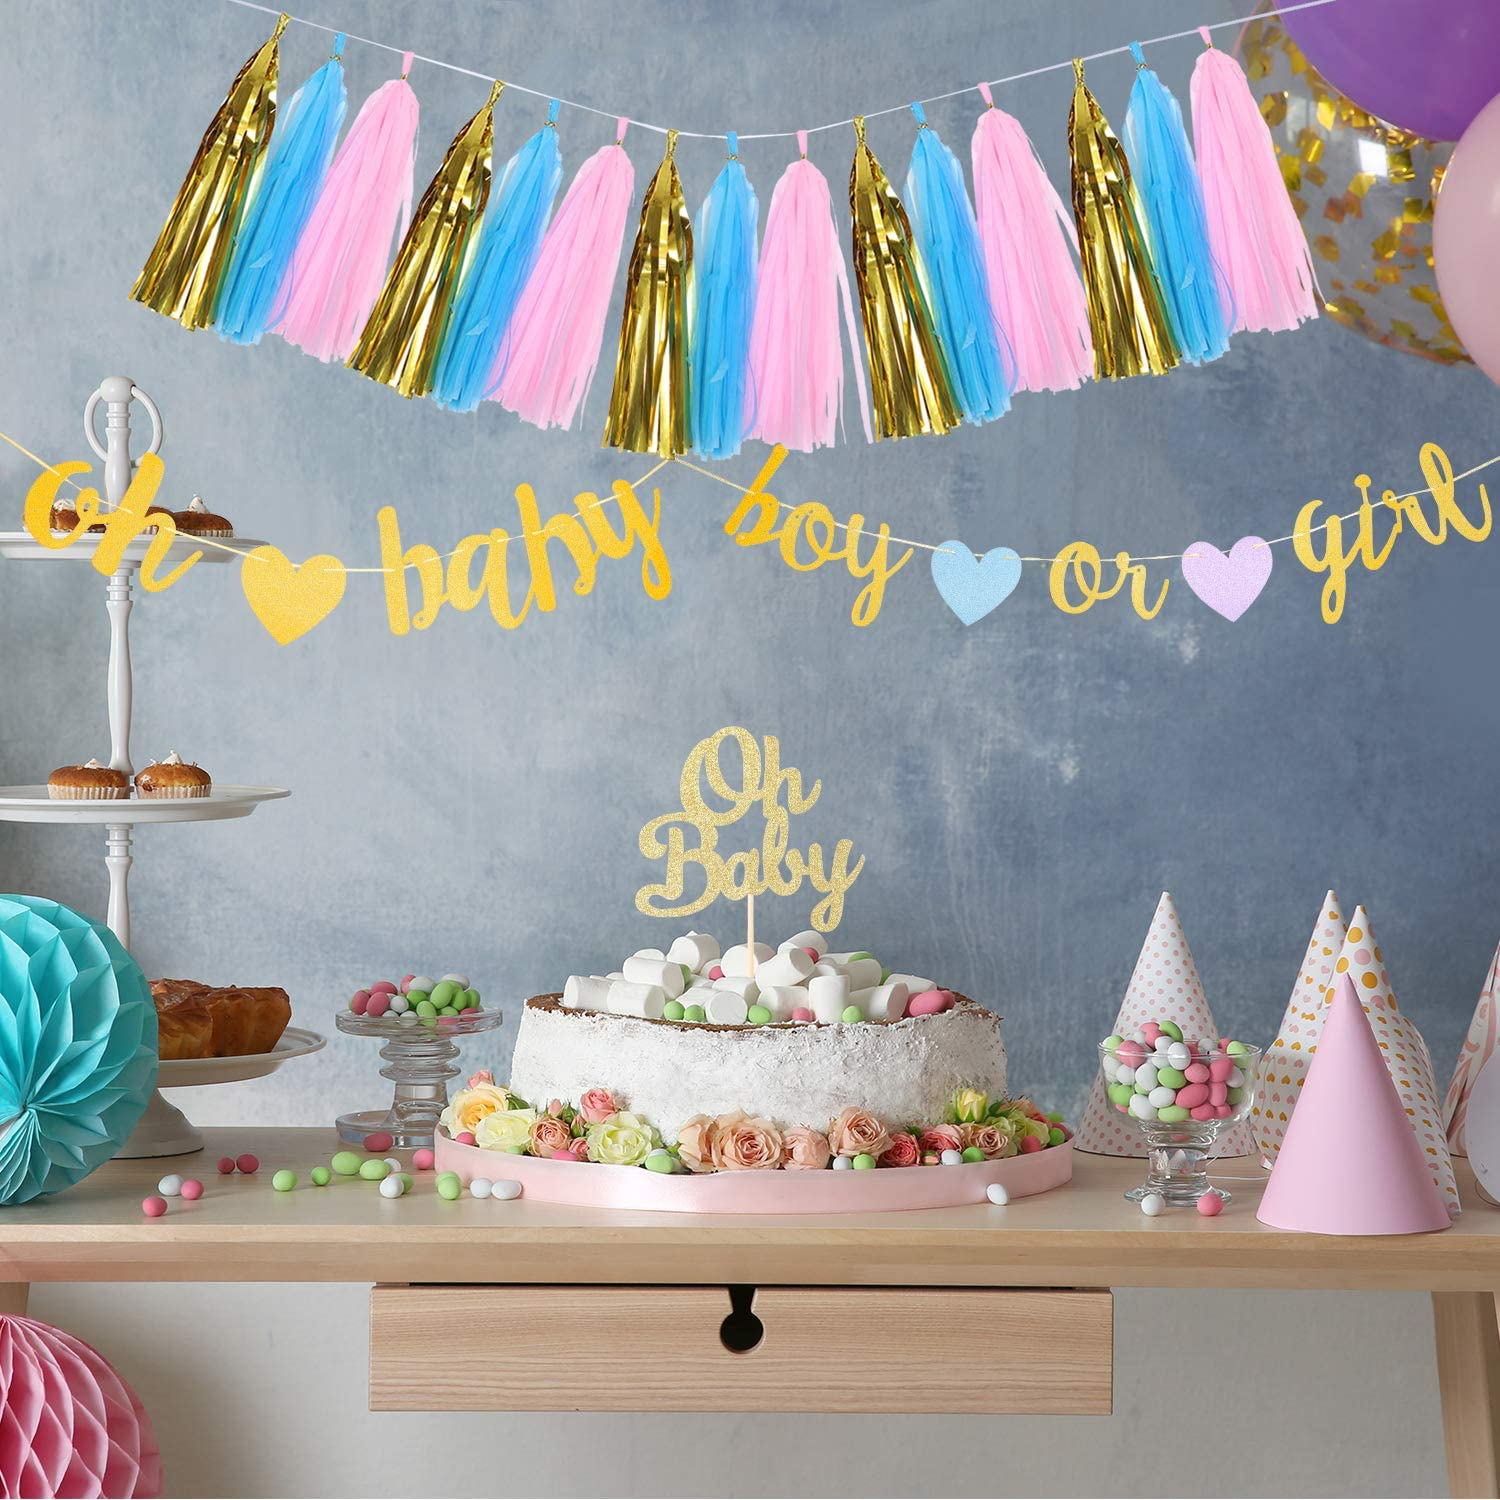 Gender Reveal Party Decorations Boy or Girl Banner Tassels Garland Cake Topper Gold Glitter Baby Banners with Hearts Banner for Baby Shower Party Decorations